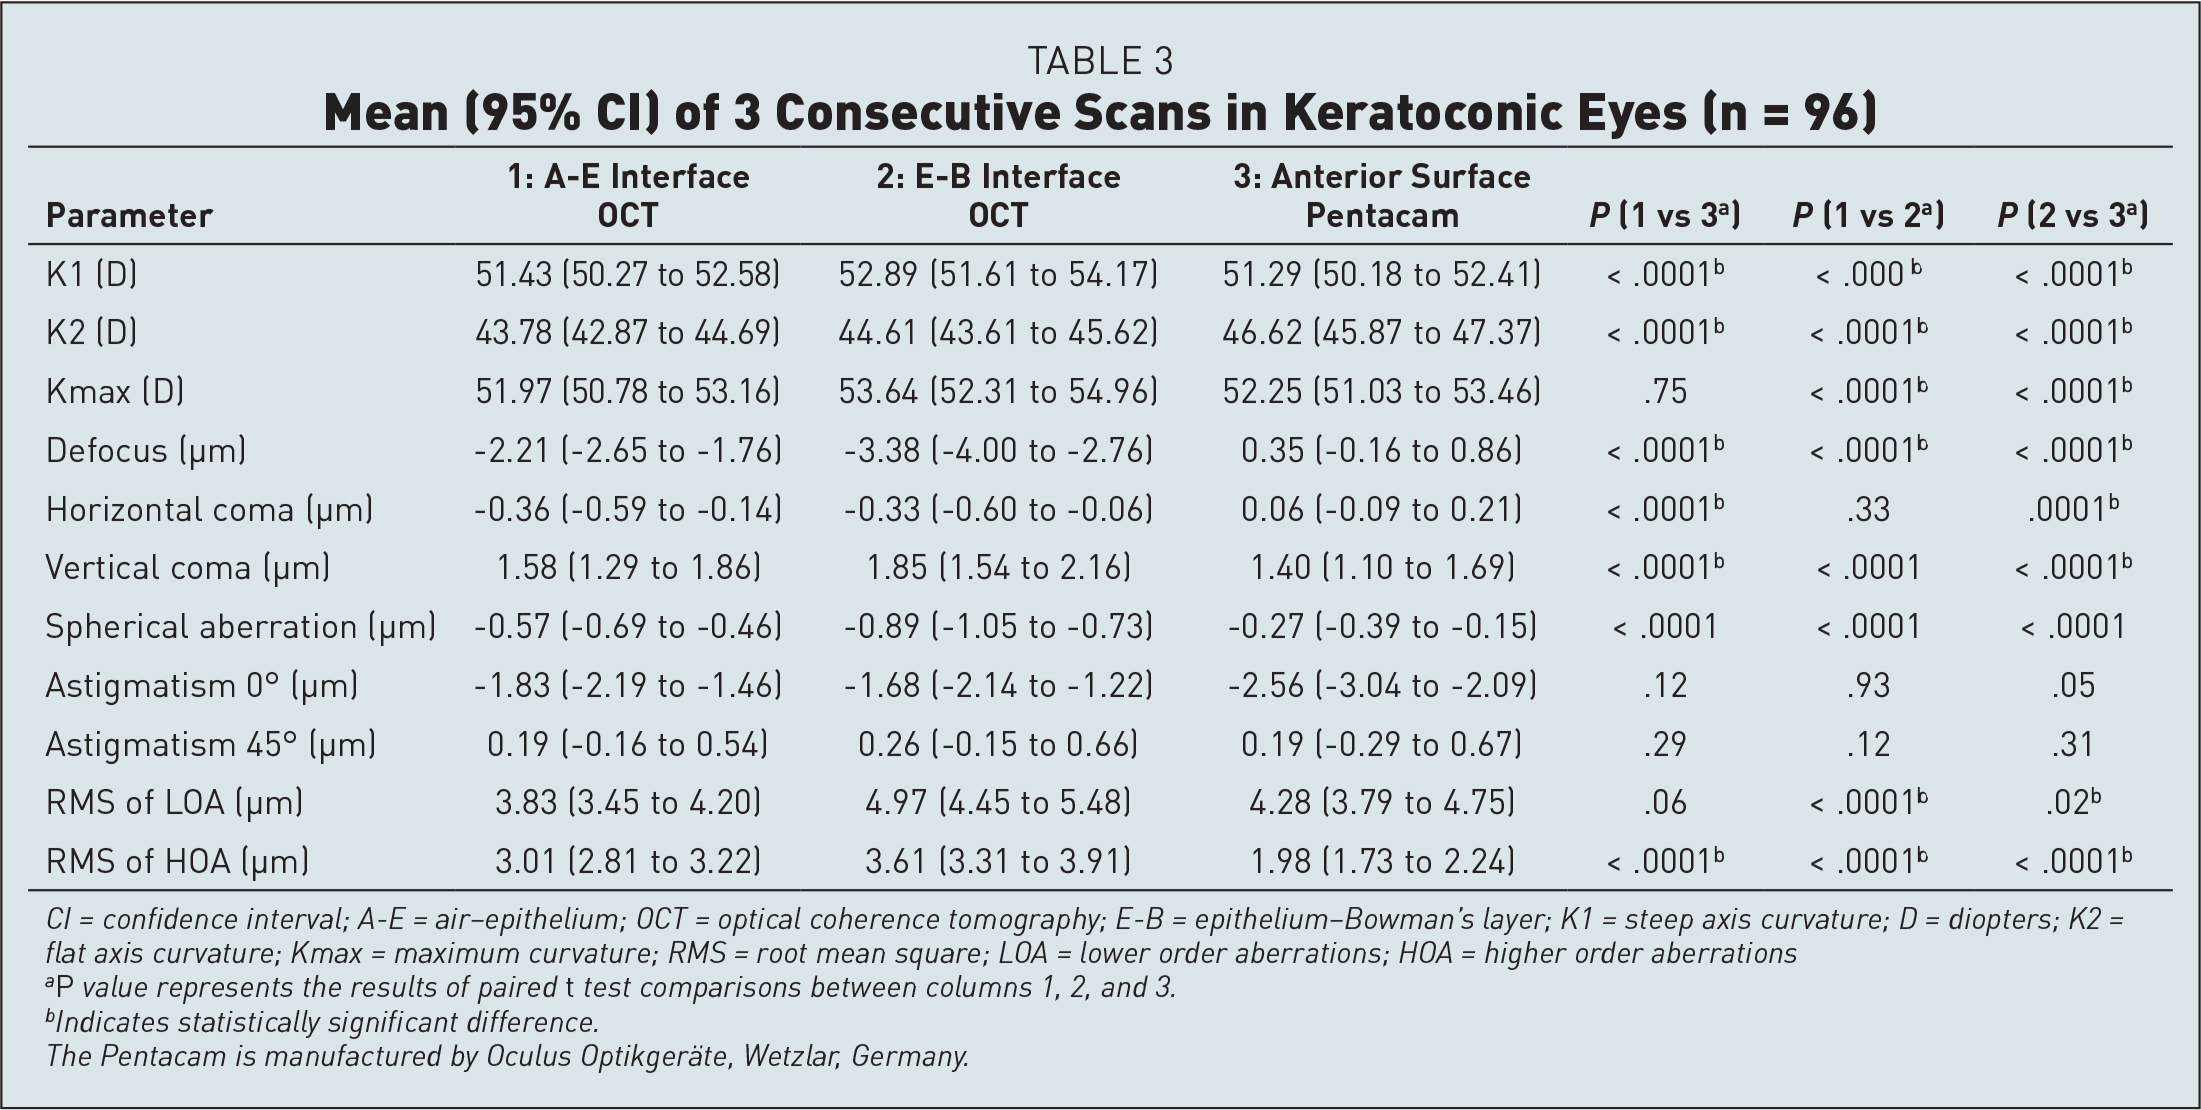 Mean (95% CI) of 3 Consecutive Scans in Keratoconic Eyes (n = 96)